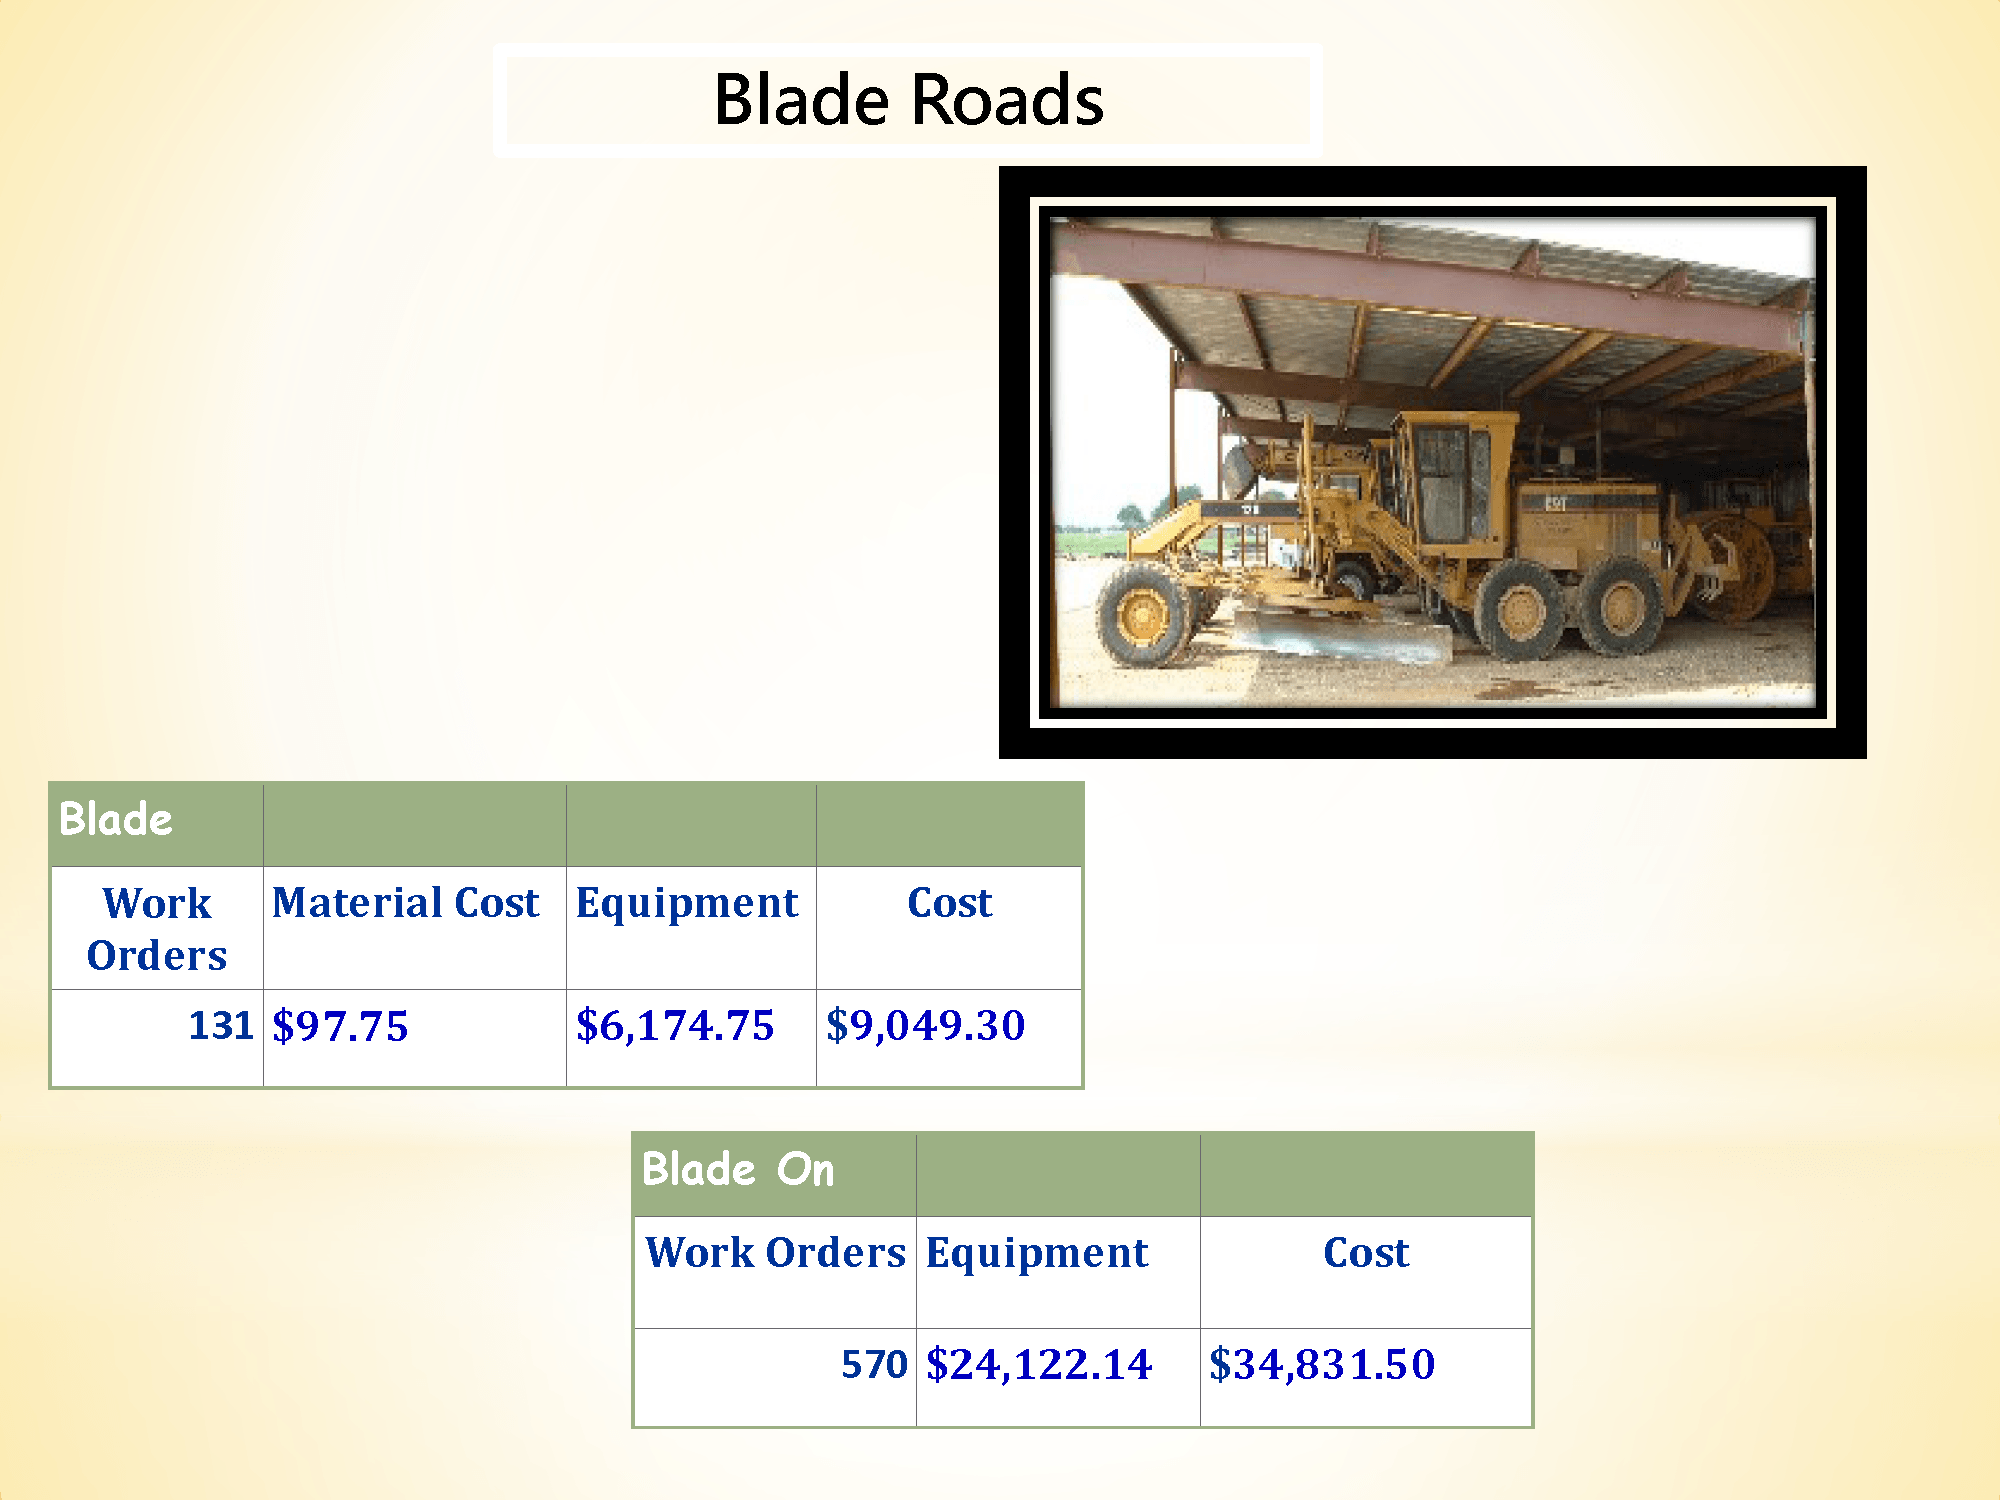 McLennan County Precinct 4 Road & Bridge  Blade Roads